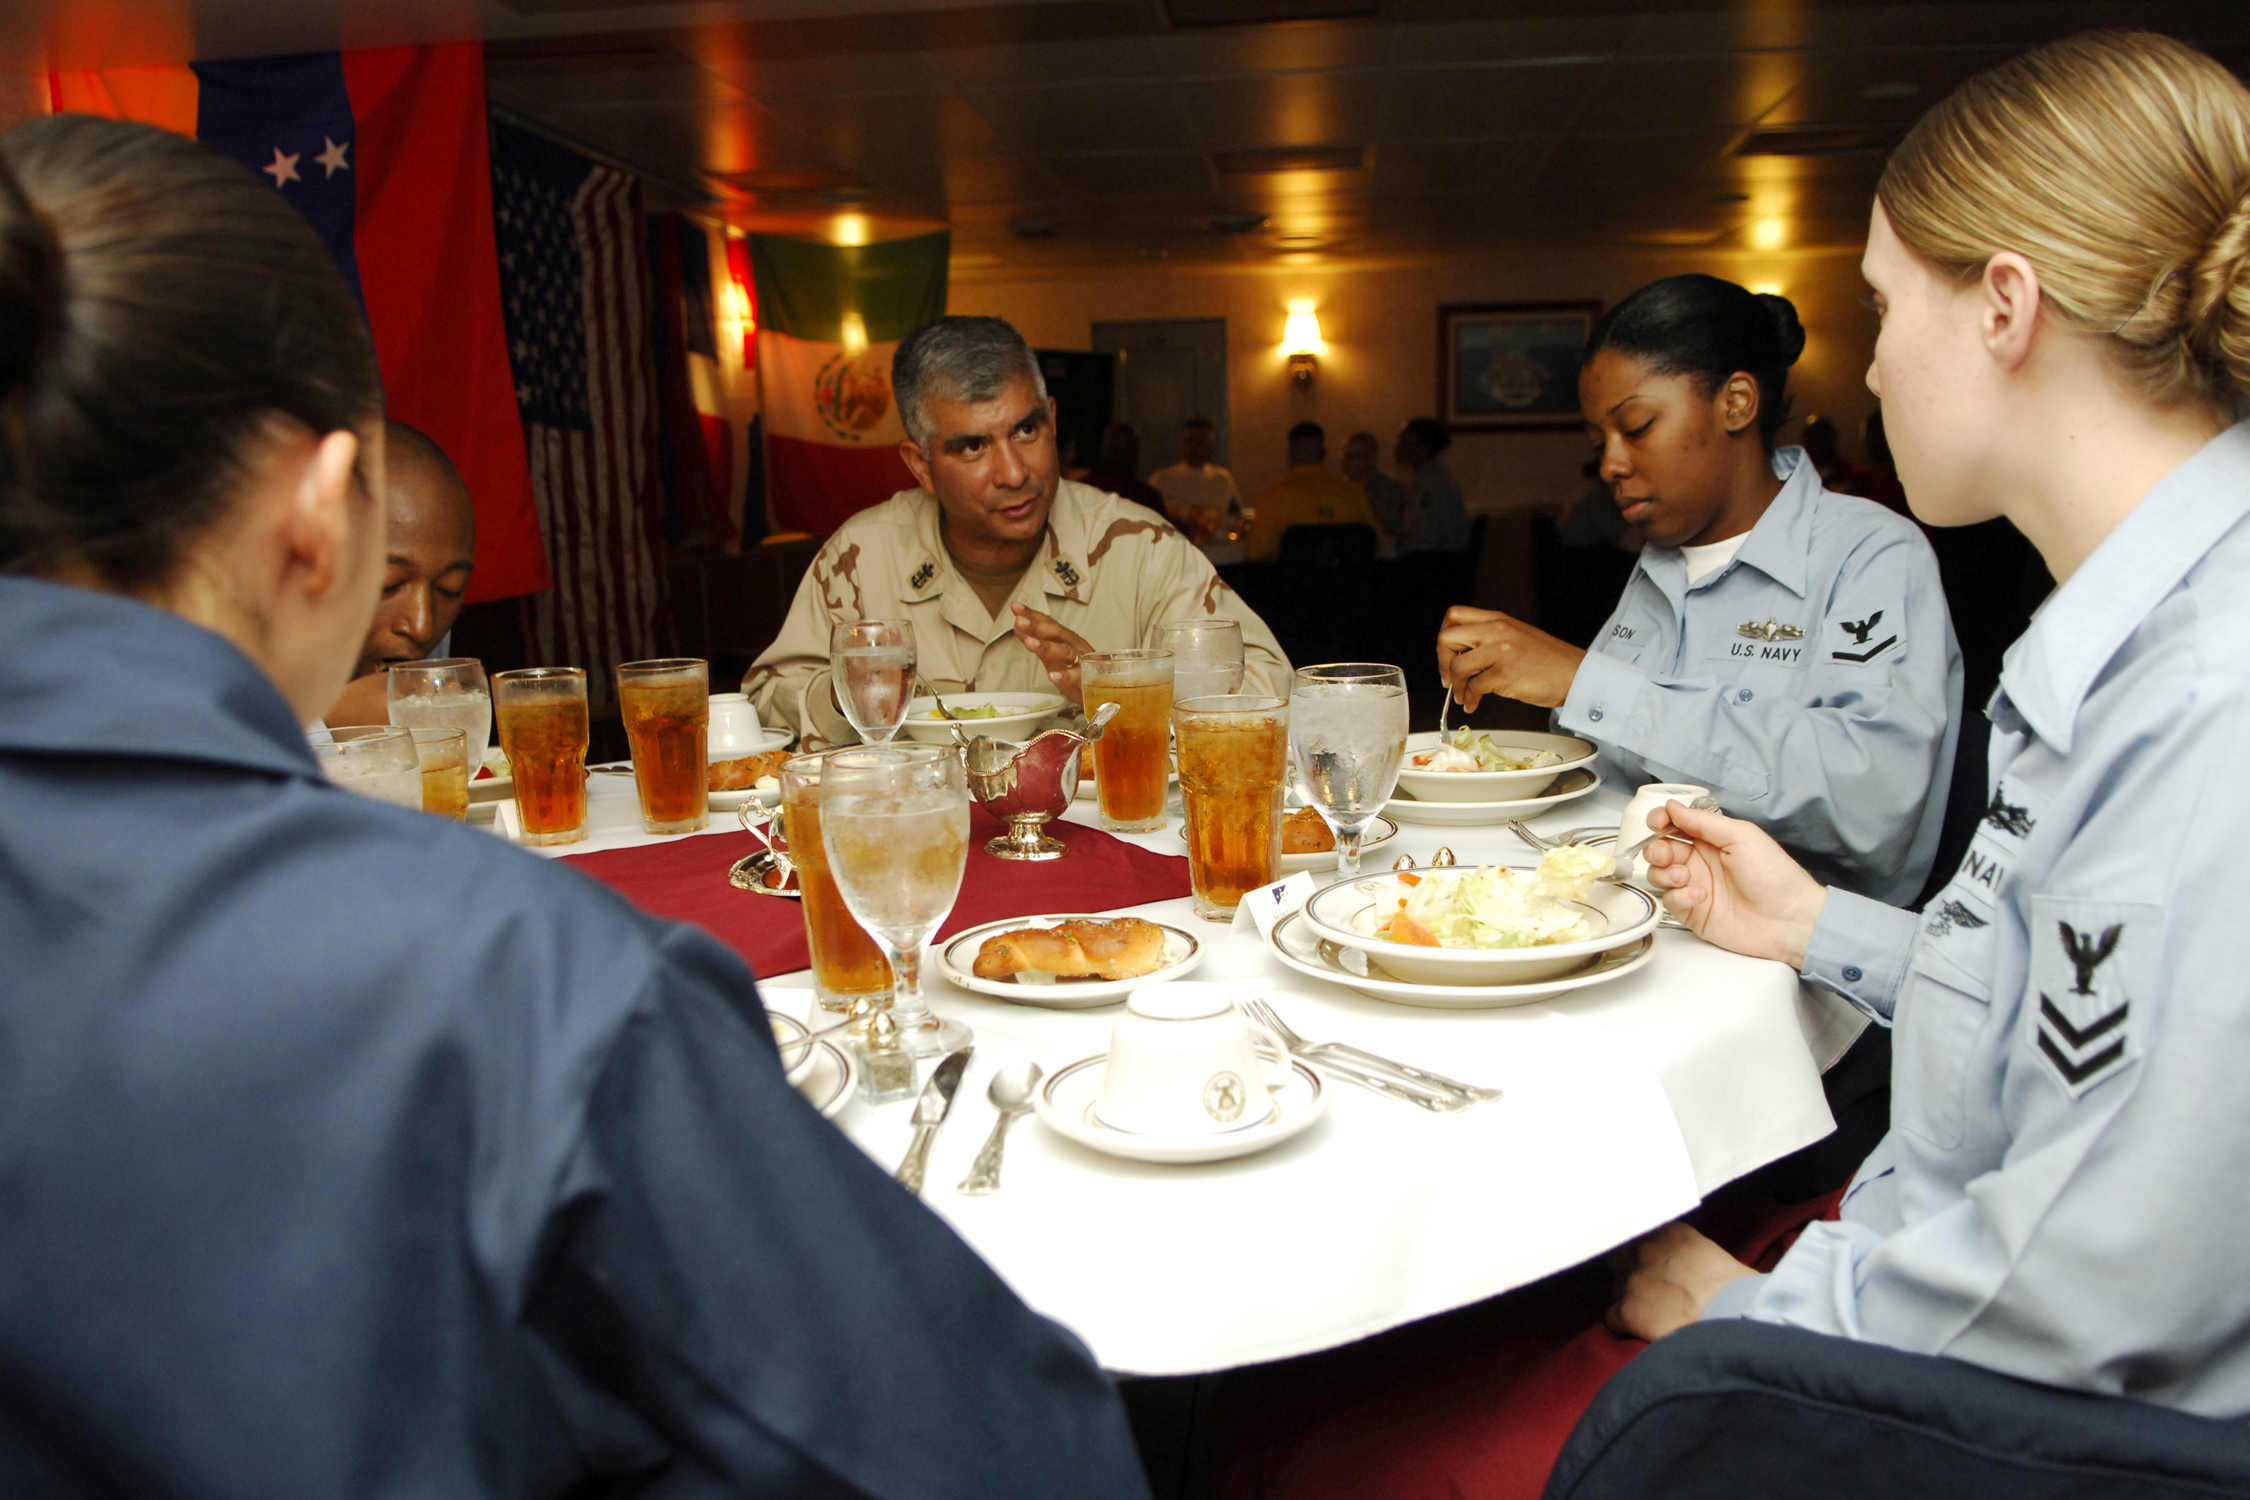 071029-N-1598C-028 PERSIAN GULF (Oct. 29, 2007) - Master Chief Petty Officer of the Navy (MCPON) Joe R. Campa Jr. enjoys a formal dinner in the wardroom with junior Sailors aboard nuclear-powered aircraft carrier USS Enterprise (CVN 65). MCPON and Chief of Naval Operations (CNO) Adm. Gary Roughead are visiting Sailors in the 5th Fleet area of responsibility. Enterprise and embarked Carrier Air Wing (CVW) 1 are underway on a scheduled deployment. U.S. Navy photo by Mass Communication Specialist 3rd Class McKinley Cartwright (RELEASED)